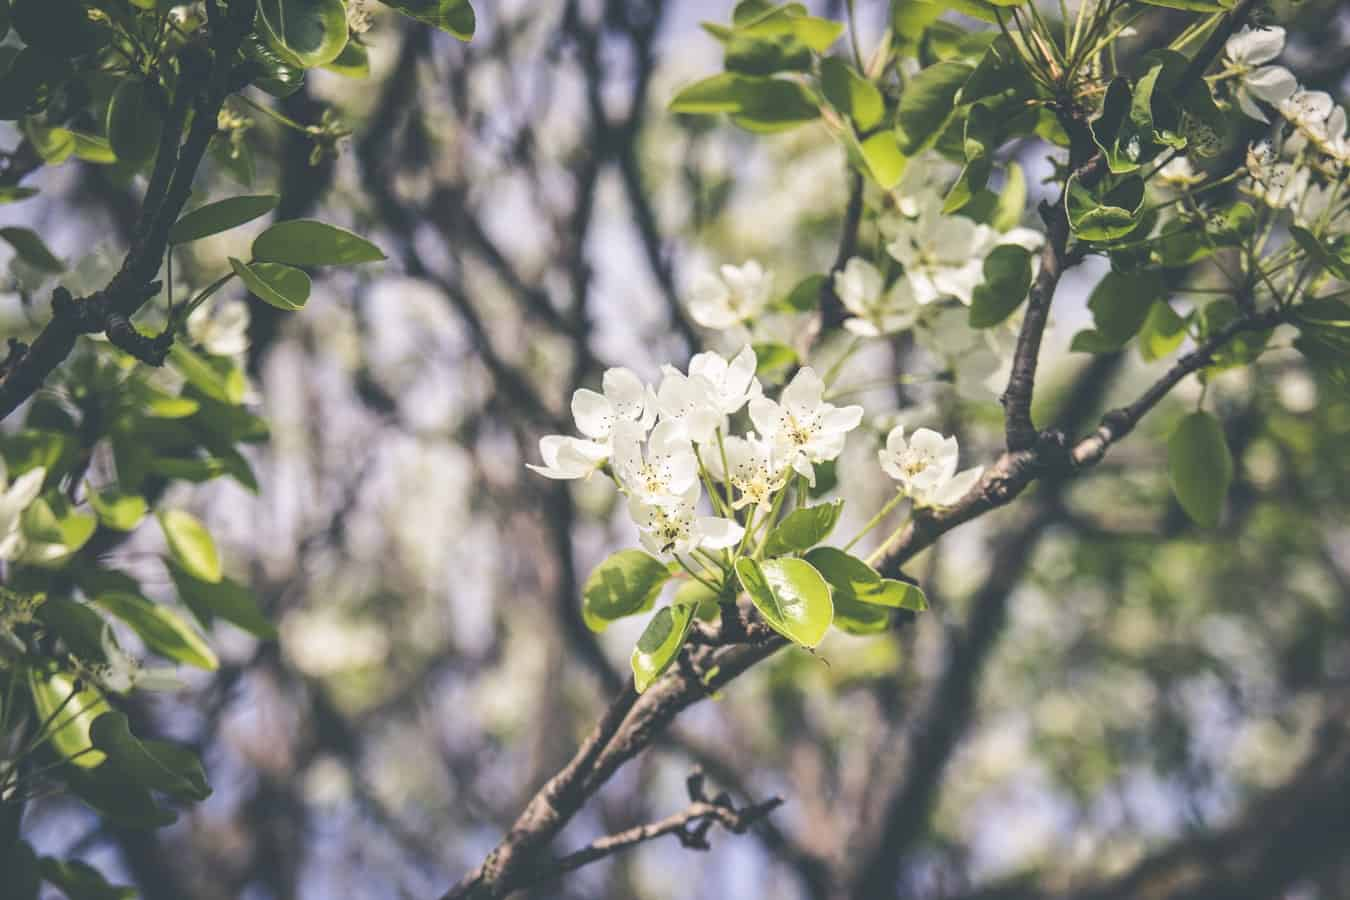 Flowers blooming in a tree, marking the start of spring and Spring Fever